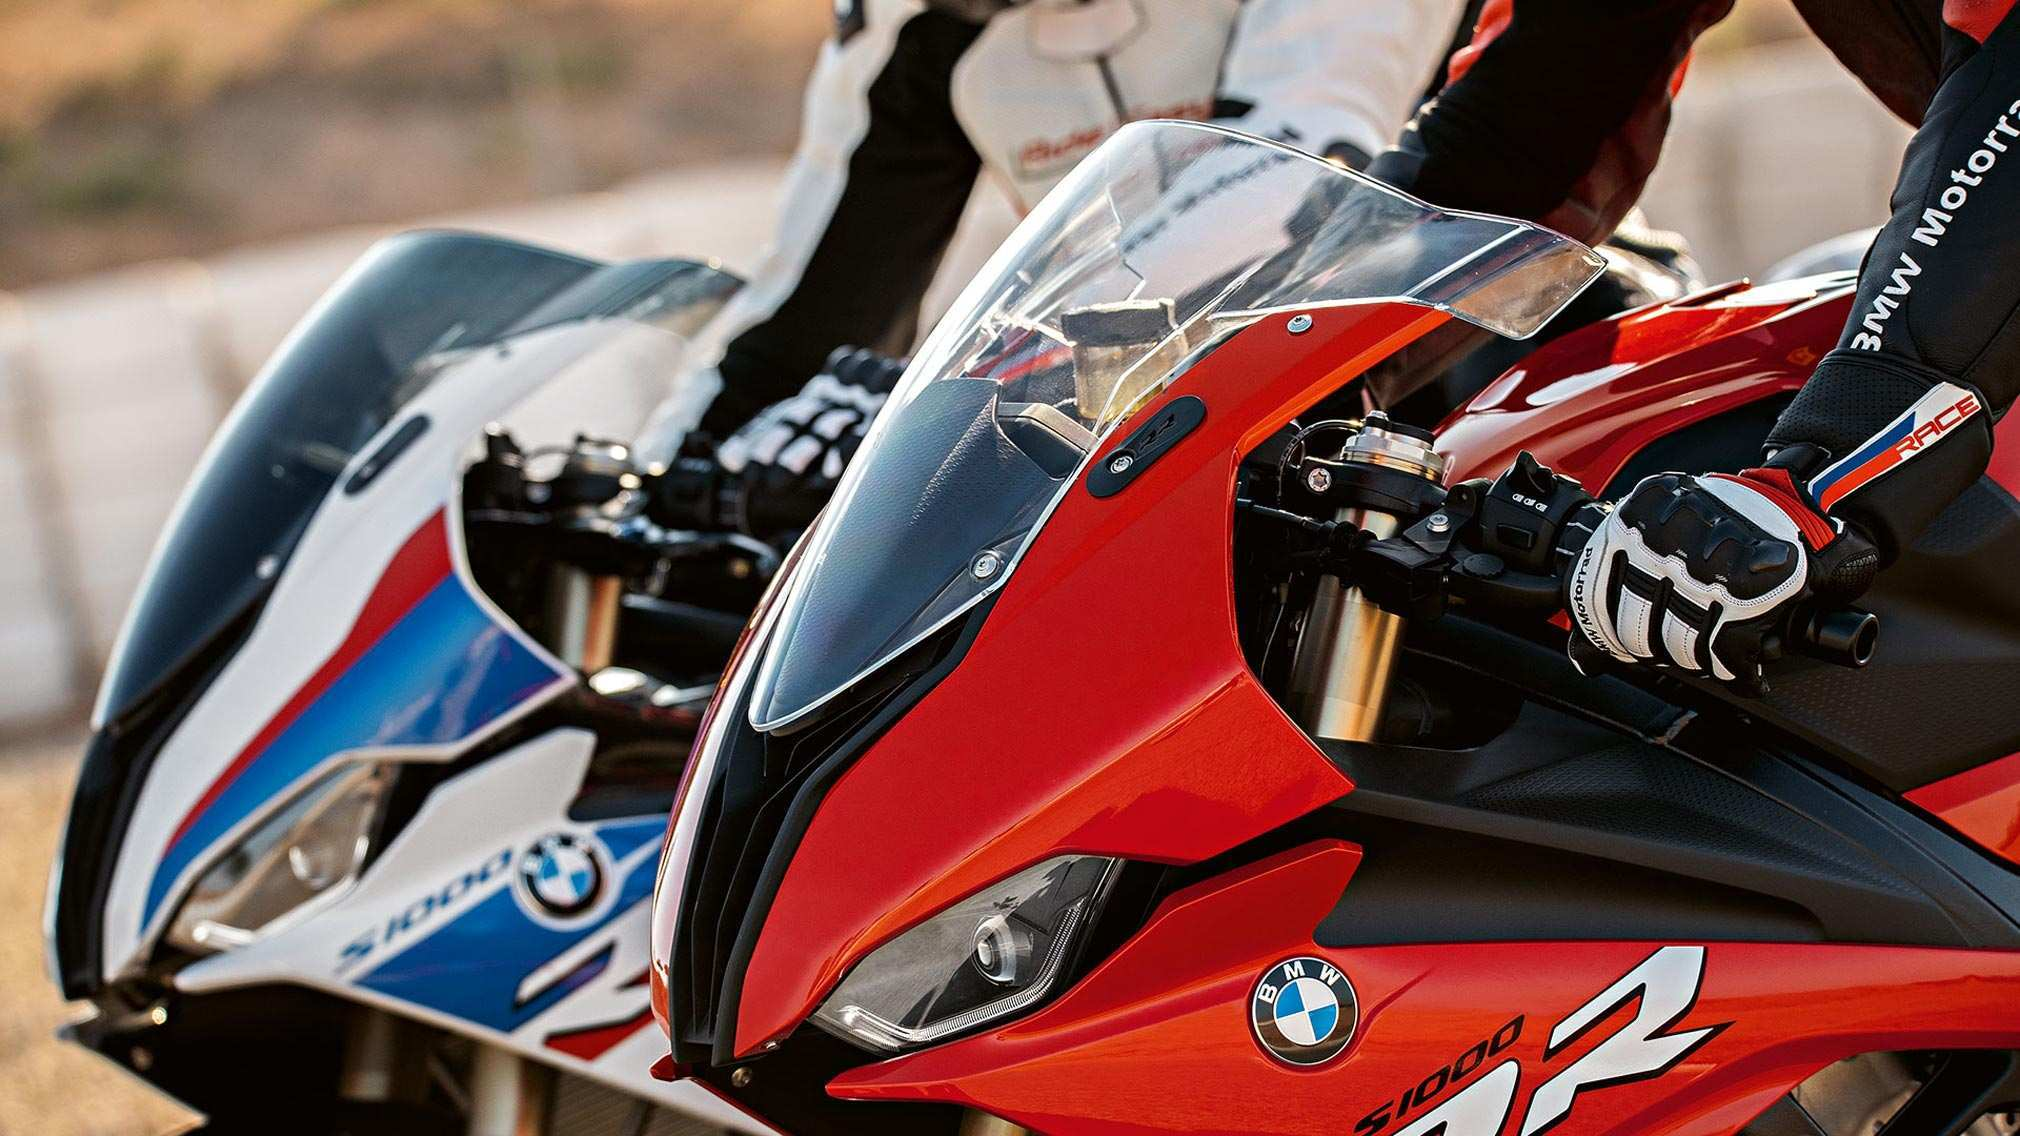 84 The Best 2020 BMW S1000Rr Price Price